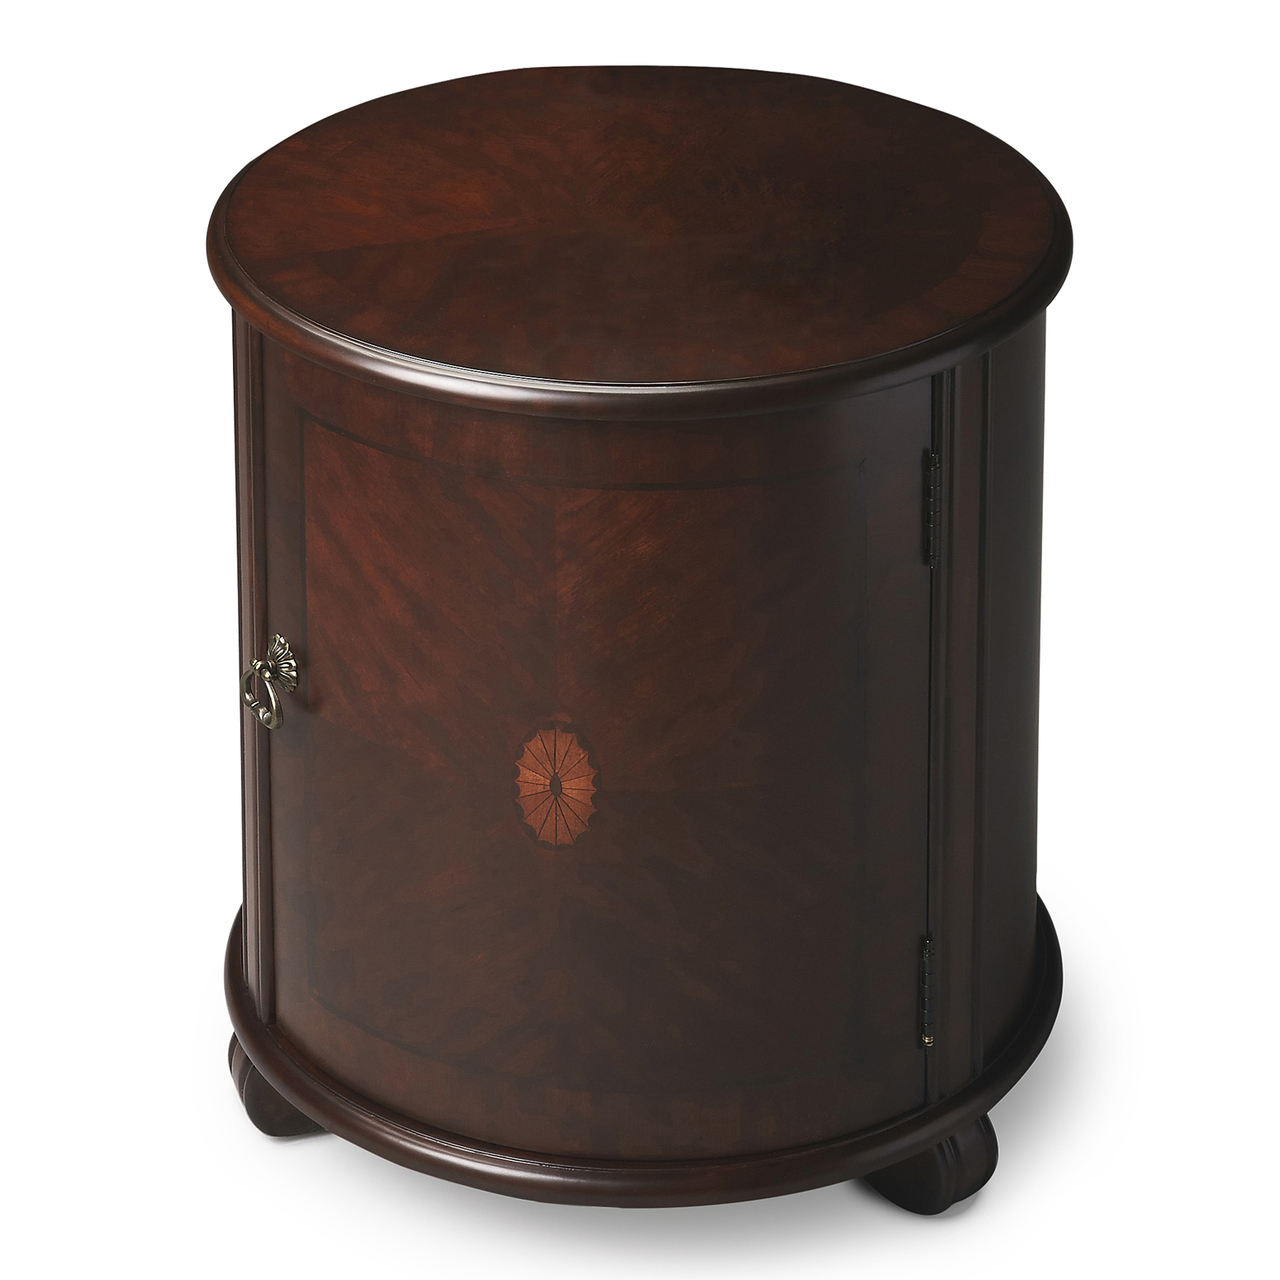 rushcliffe round inlaid drum table kensington rown tables end cherry finish categories mission style night glass top couch thomasville furniture row accent chairs brass lamps for